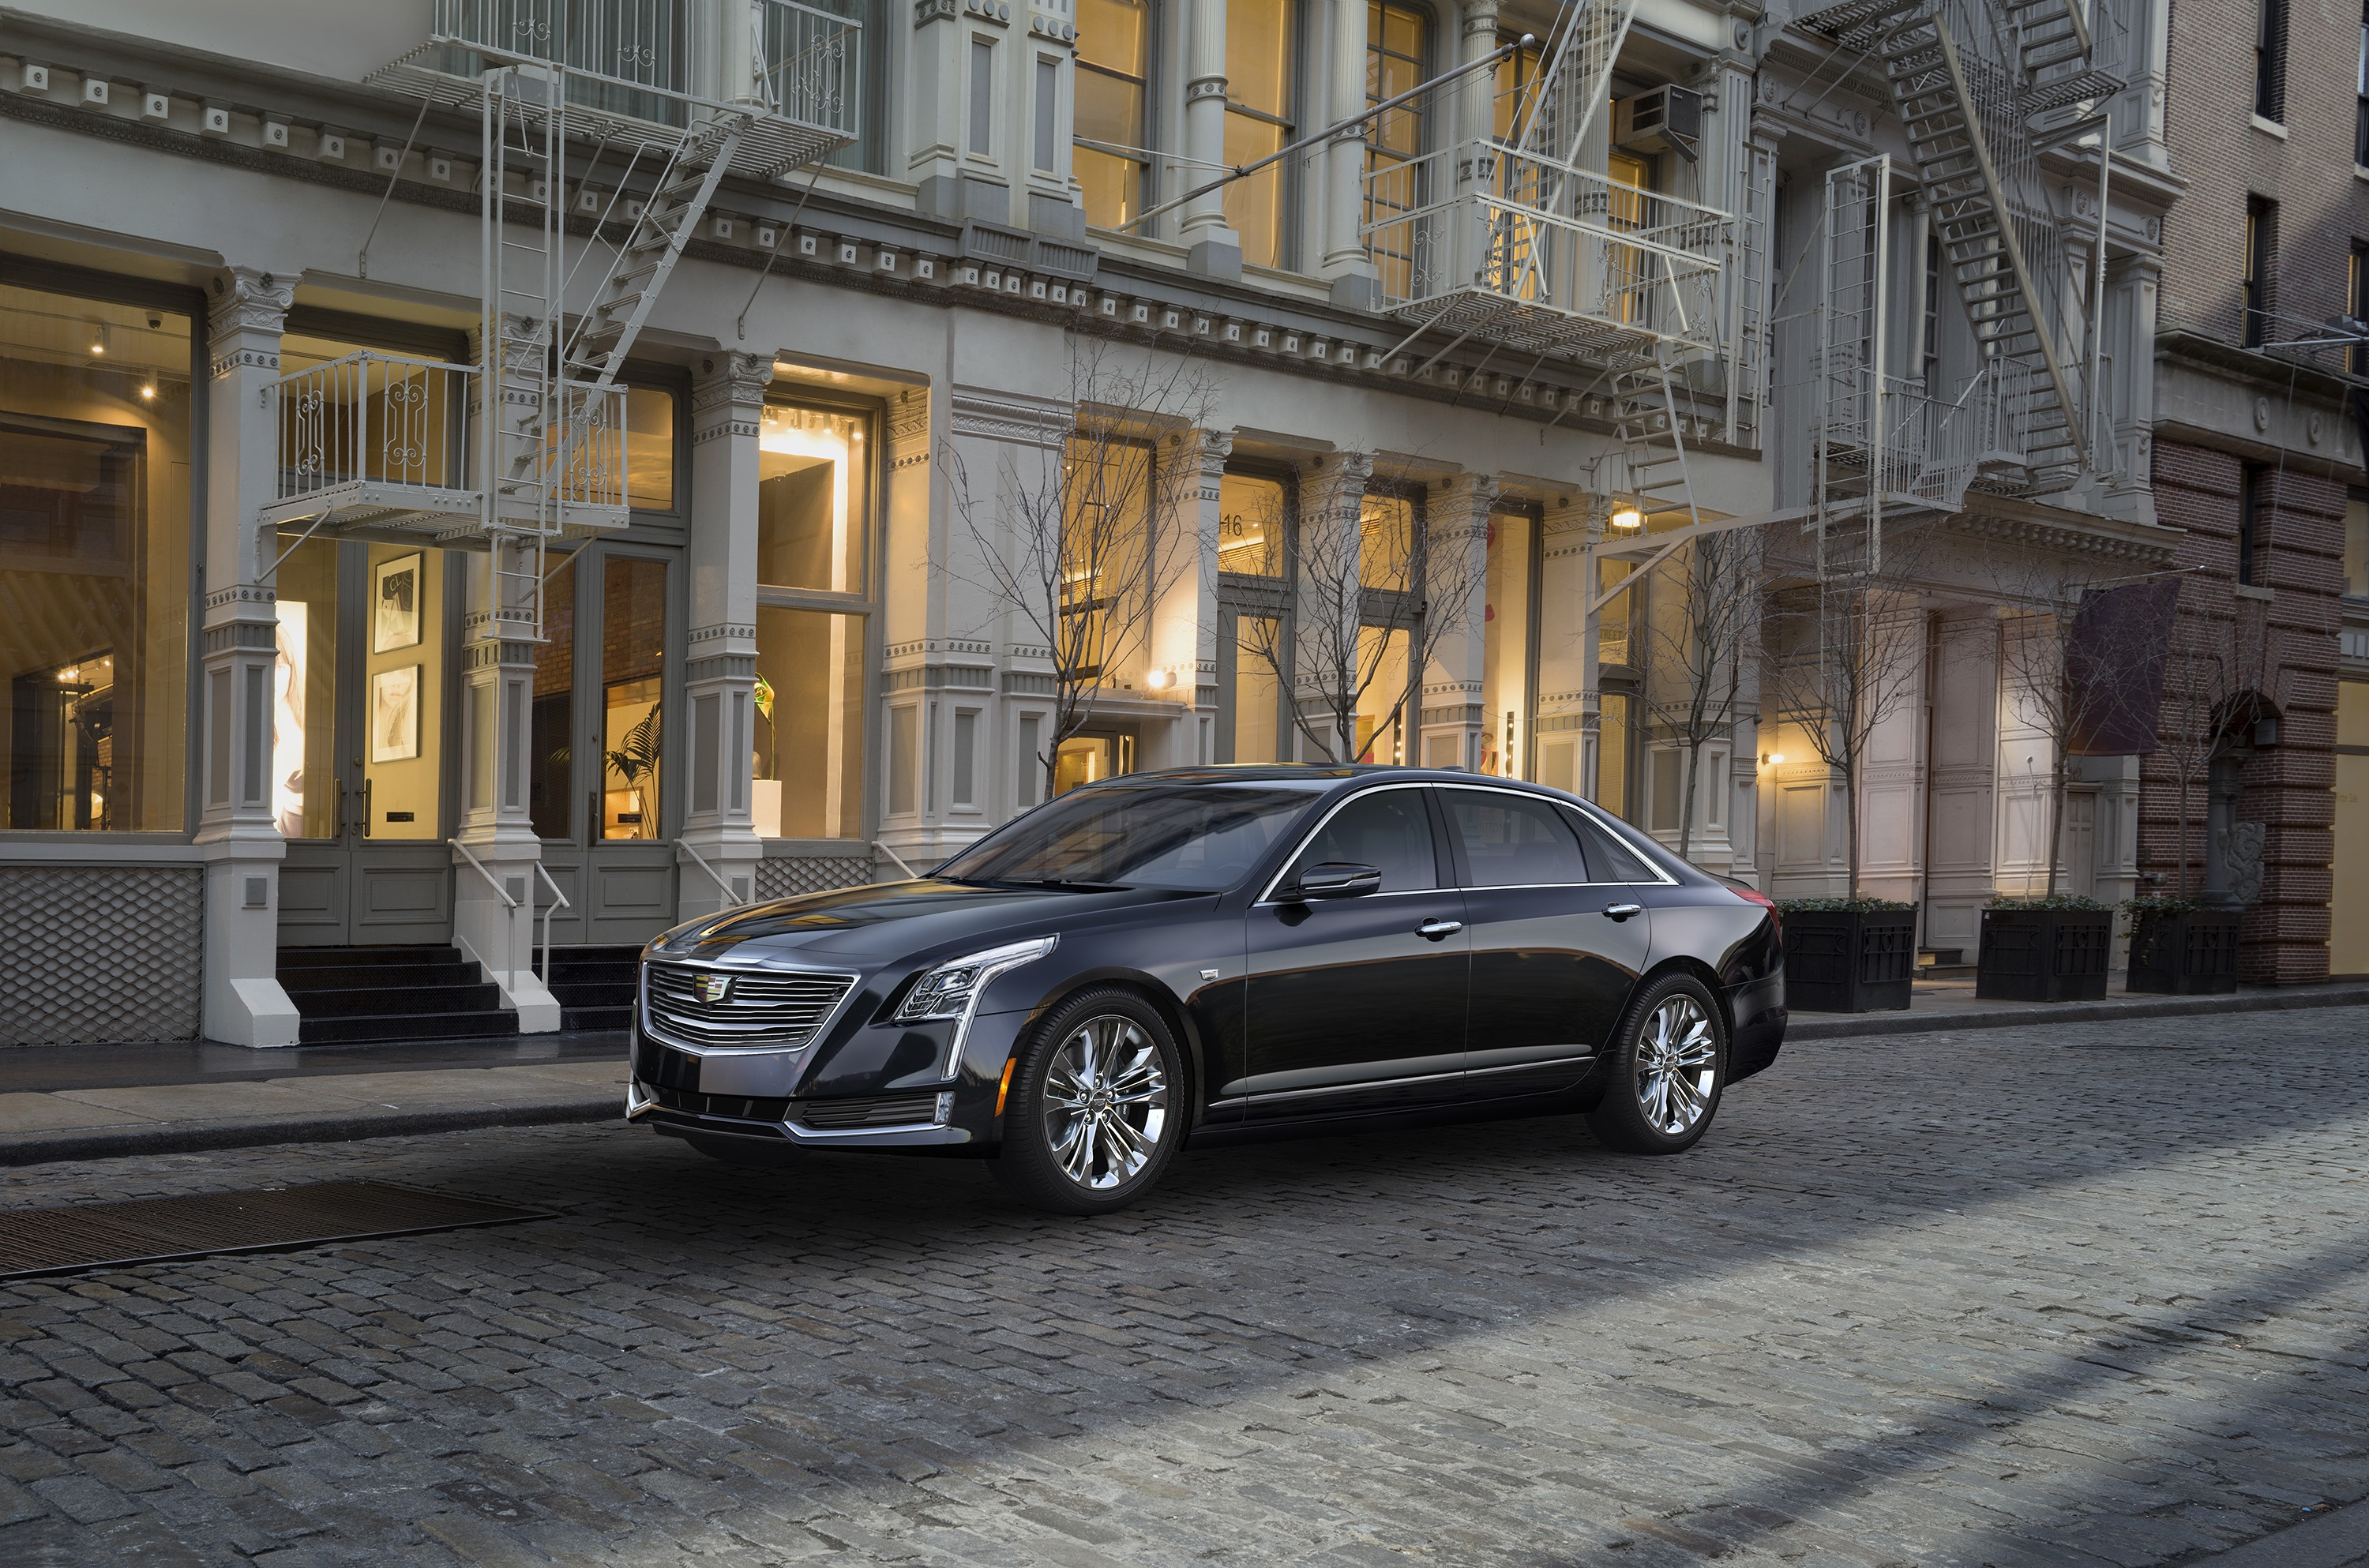 ct6 shown plenty of love in consumer reports review   autoevolution